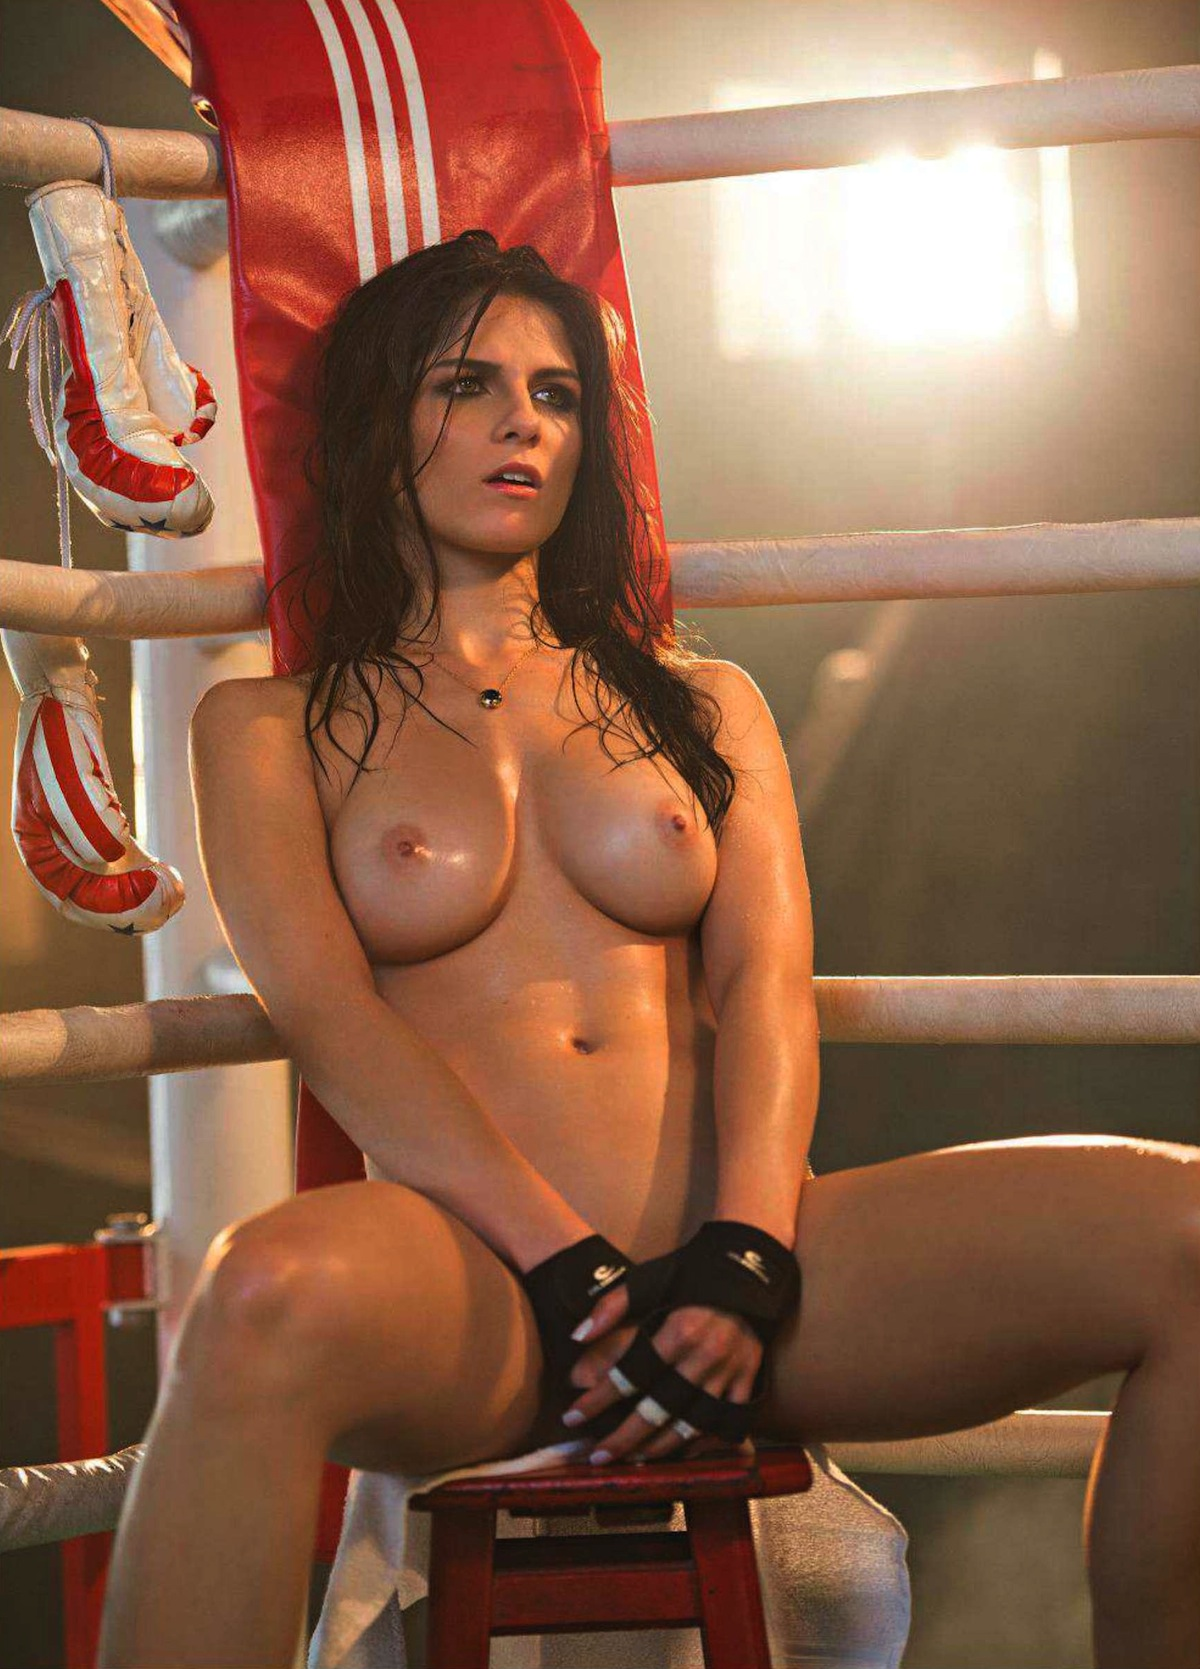 Ufc ring girl nude pictures